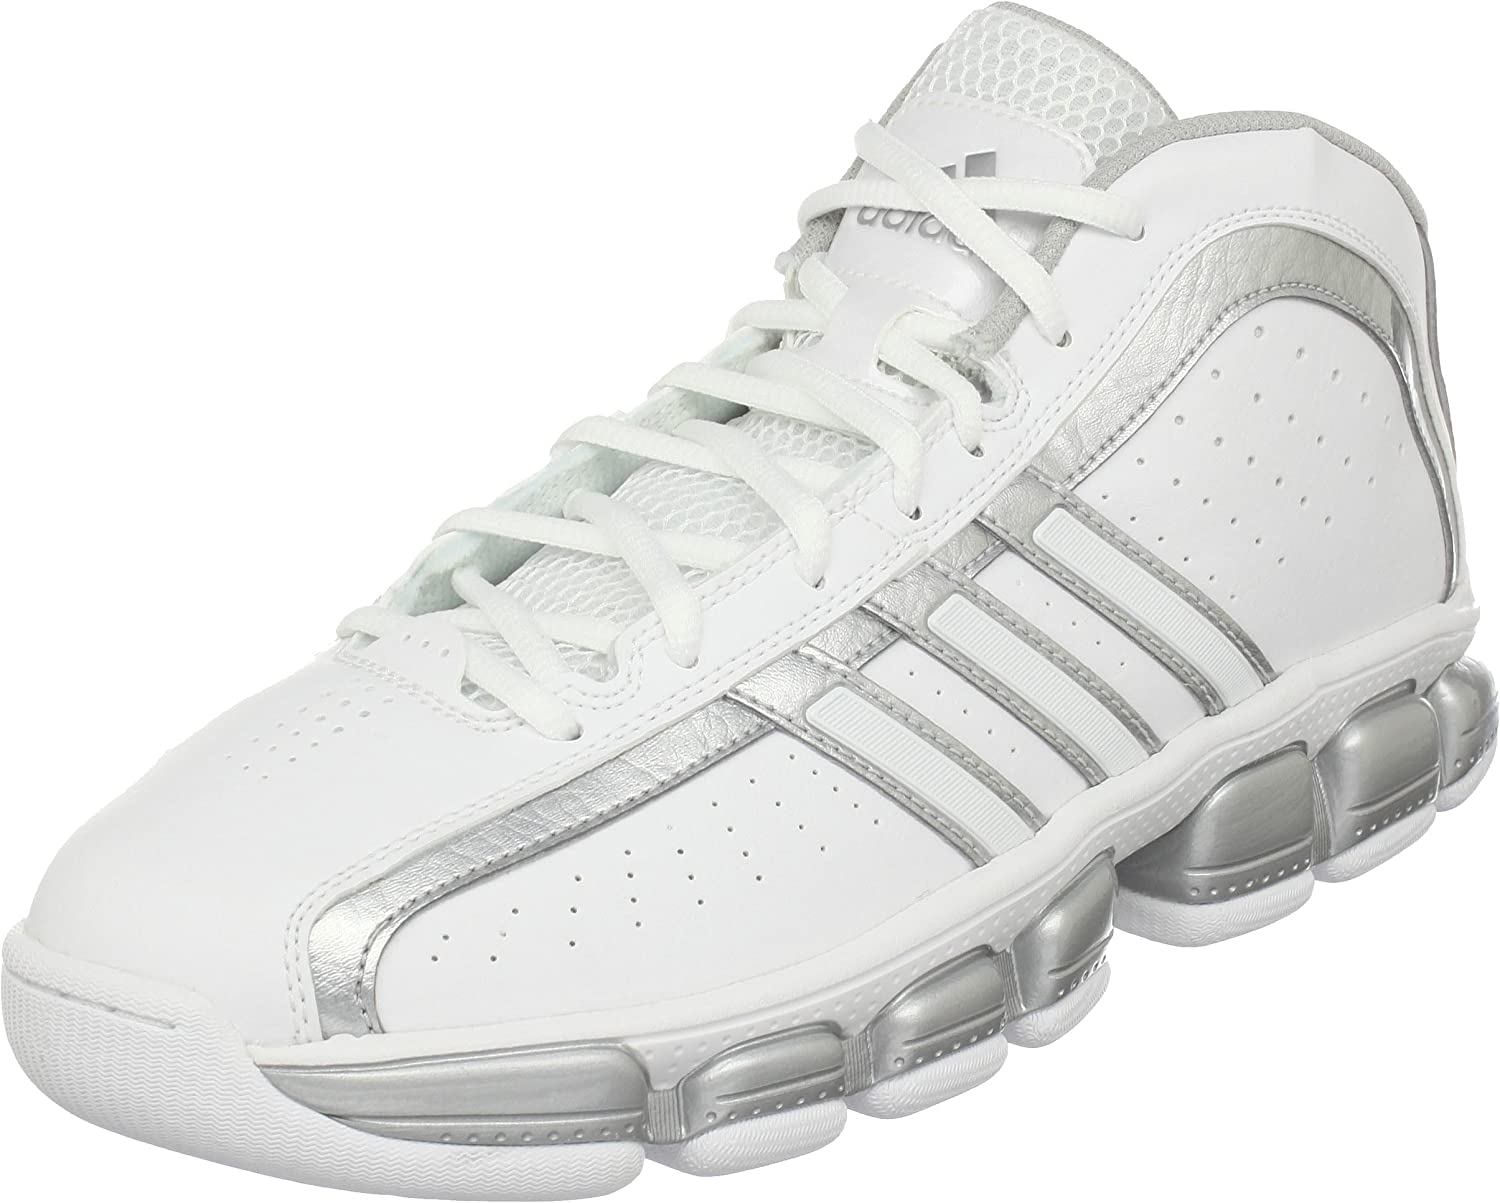 adidas Men s Floater Glide Basketball Shoe